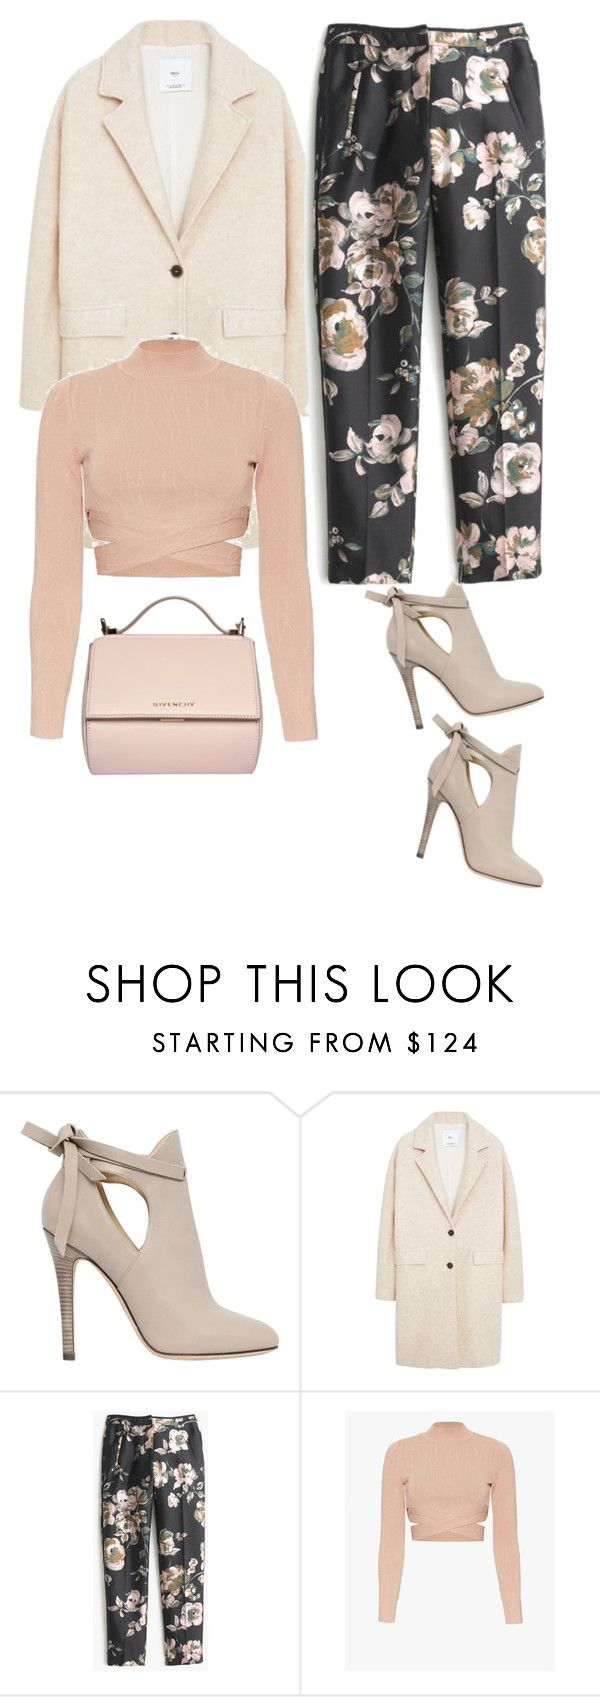 """""""Untitled #1053"""" by ladygroovenyc ❤ liked on Polyvore featuring Jimmy Choo, MANGO, J.Crew, Jonathan Simkhai and Givenchy"""